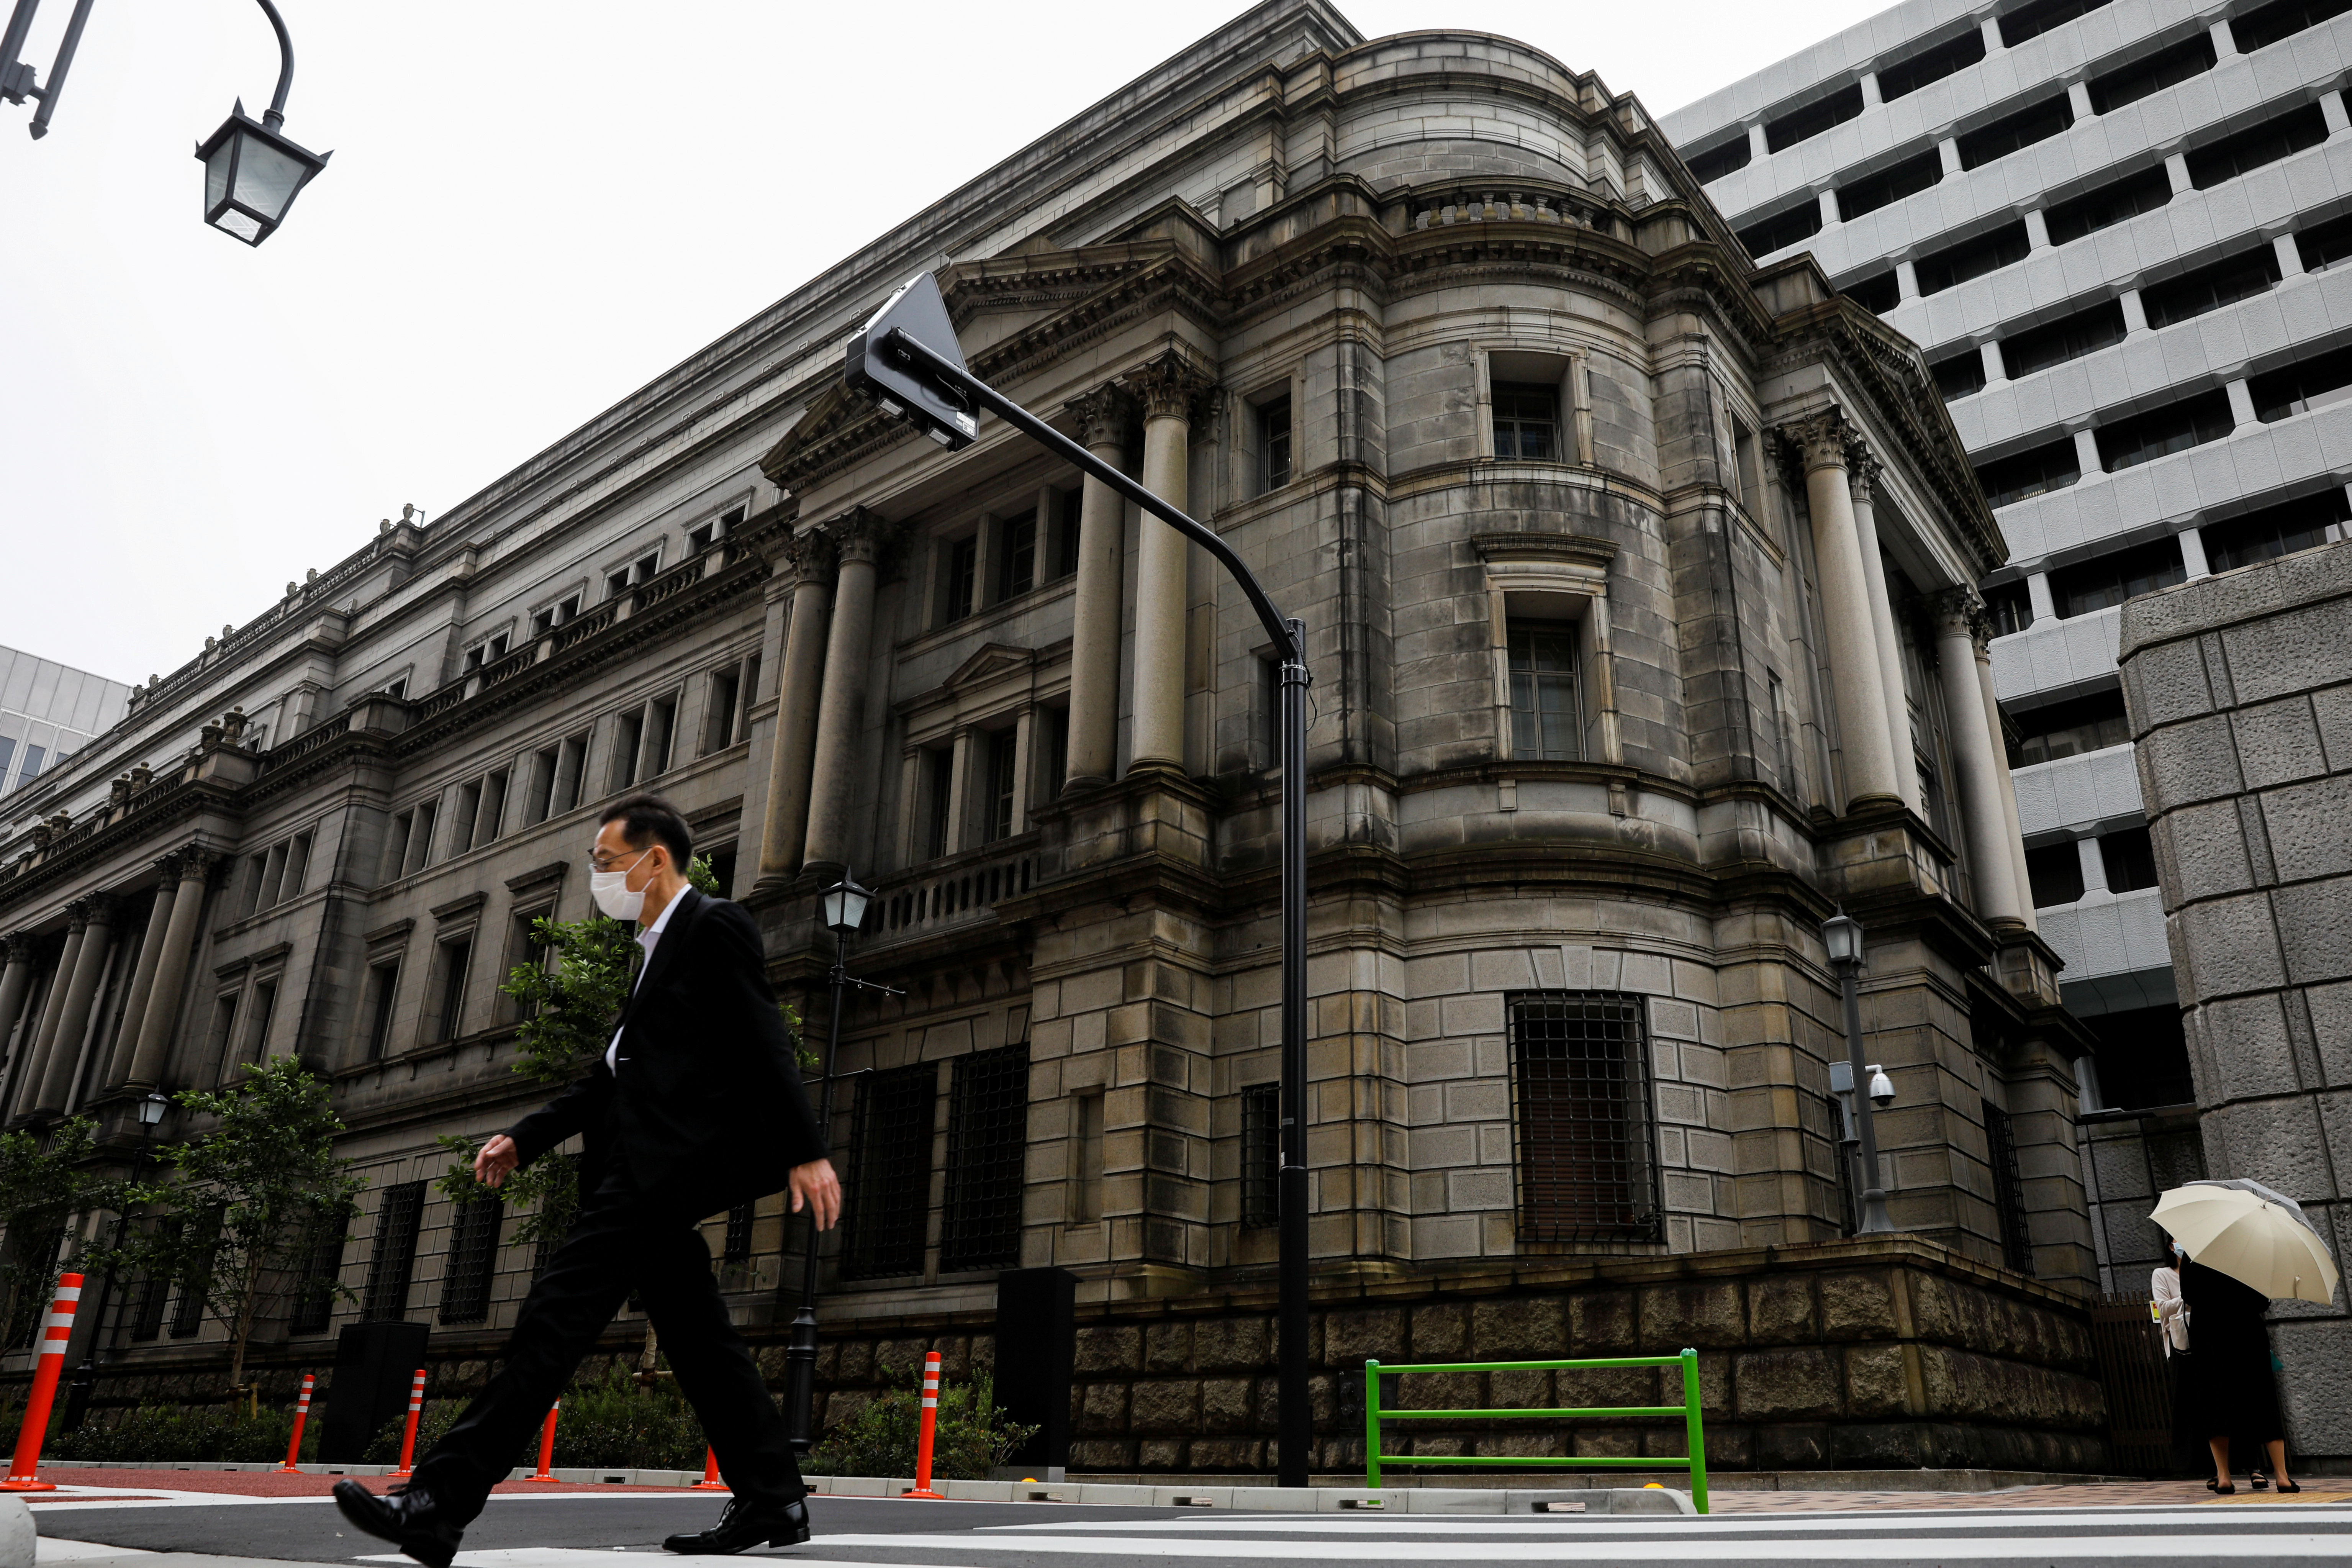 A man wearing a protective mask walks past the headquarters of Bank of Japan amid the coronavirus disease (COVID-19) outbreak in Tokyo, Japan, May 22, 2020. REUTERS/Kim Kyung-Hoon